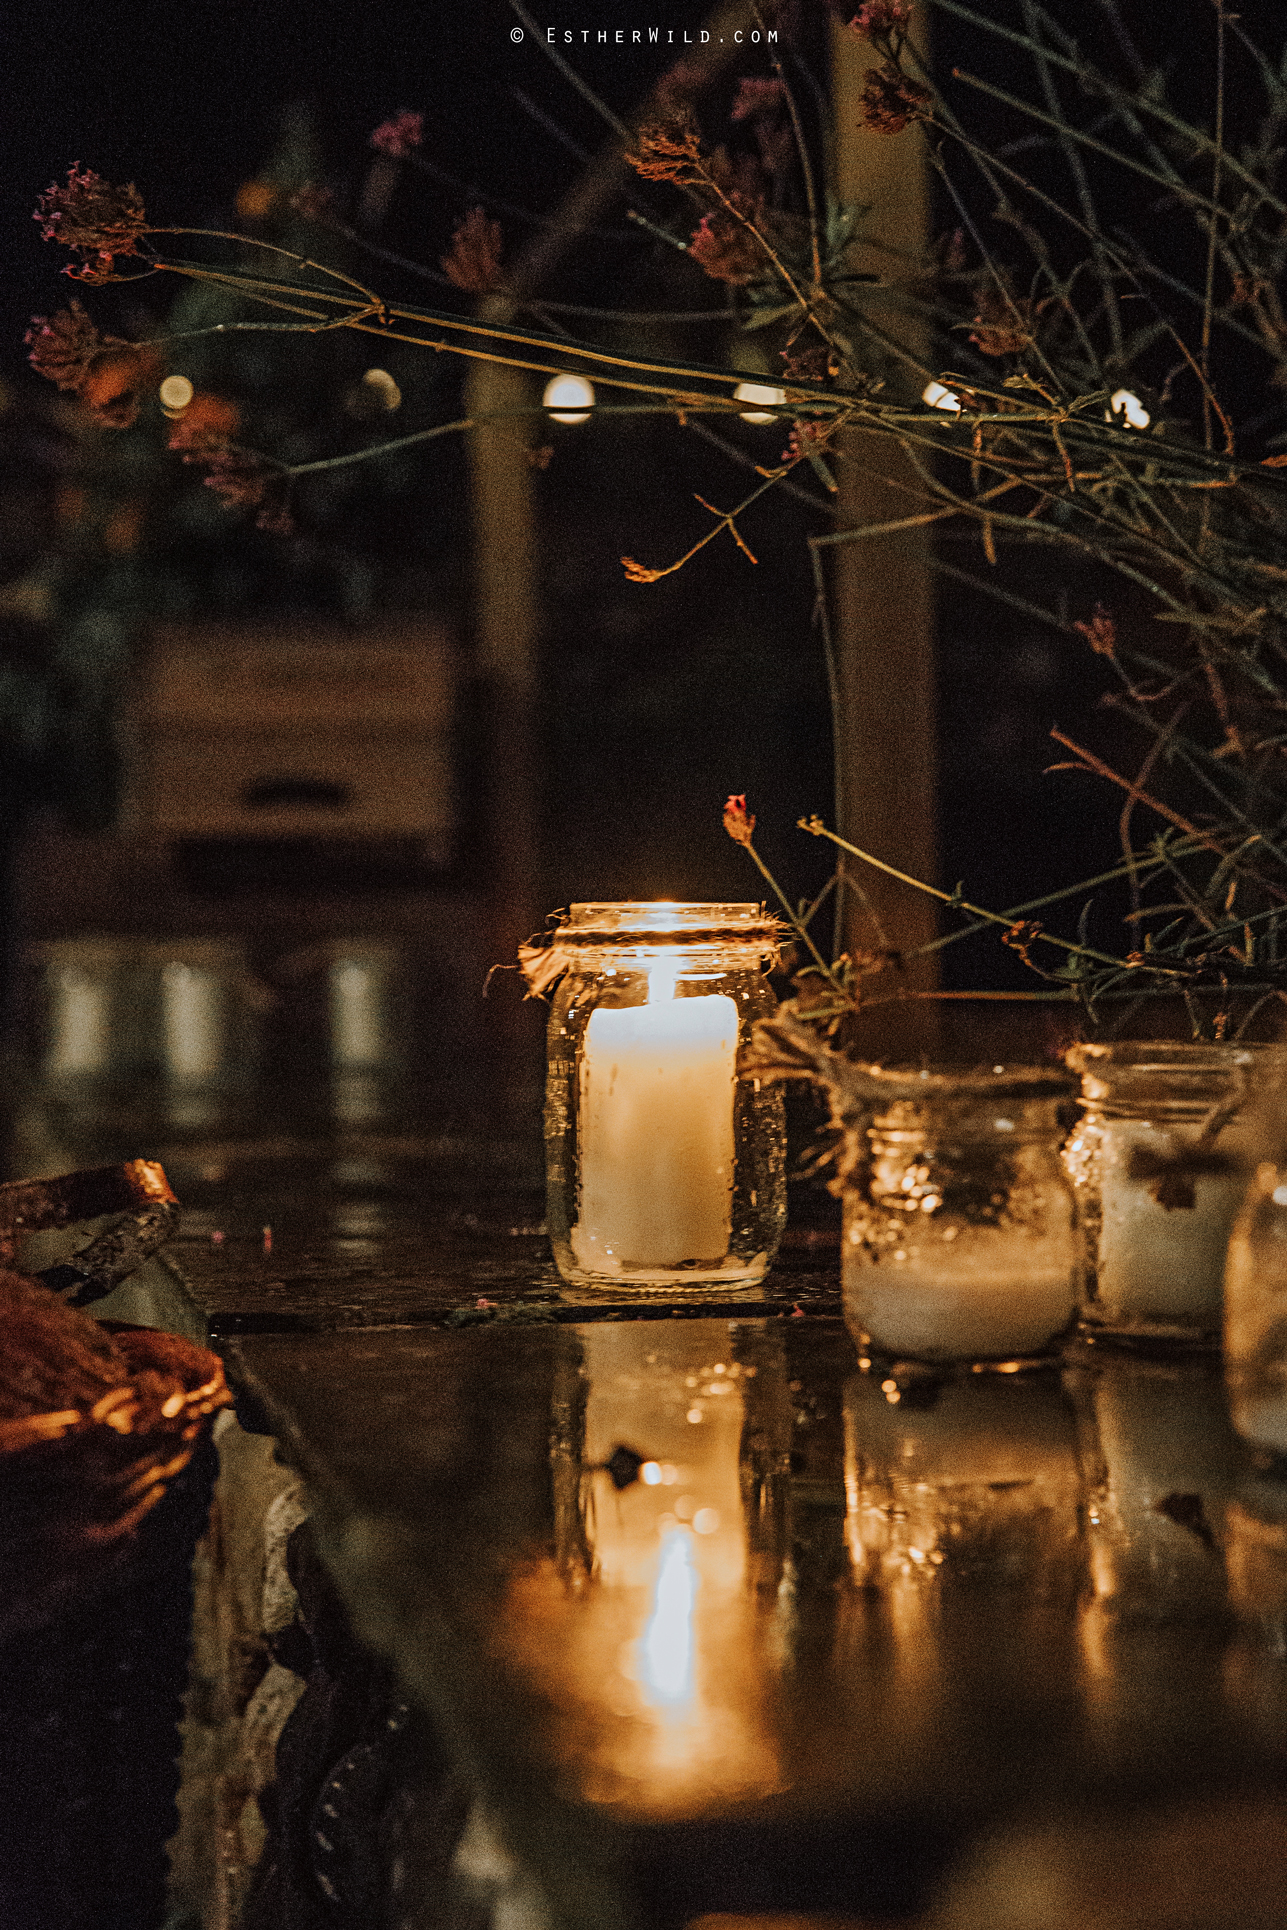 Wedding_Photographer_Chaucer_Barn_Holt_Norfolk_Country_Rustic_Venue_Copyright_Esther_Wild_IMG_2318.jpg